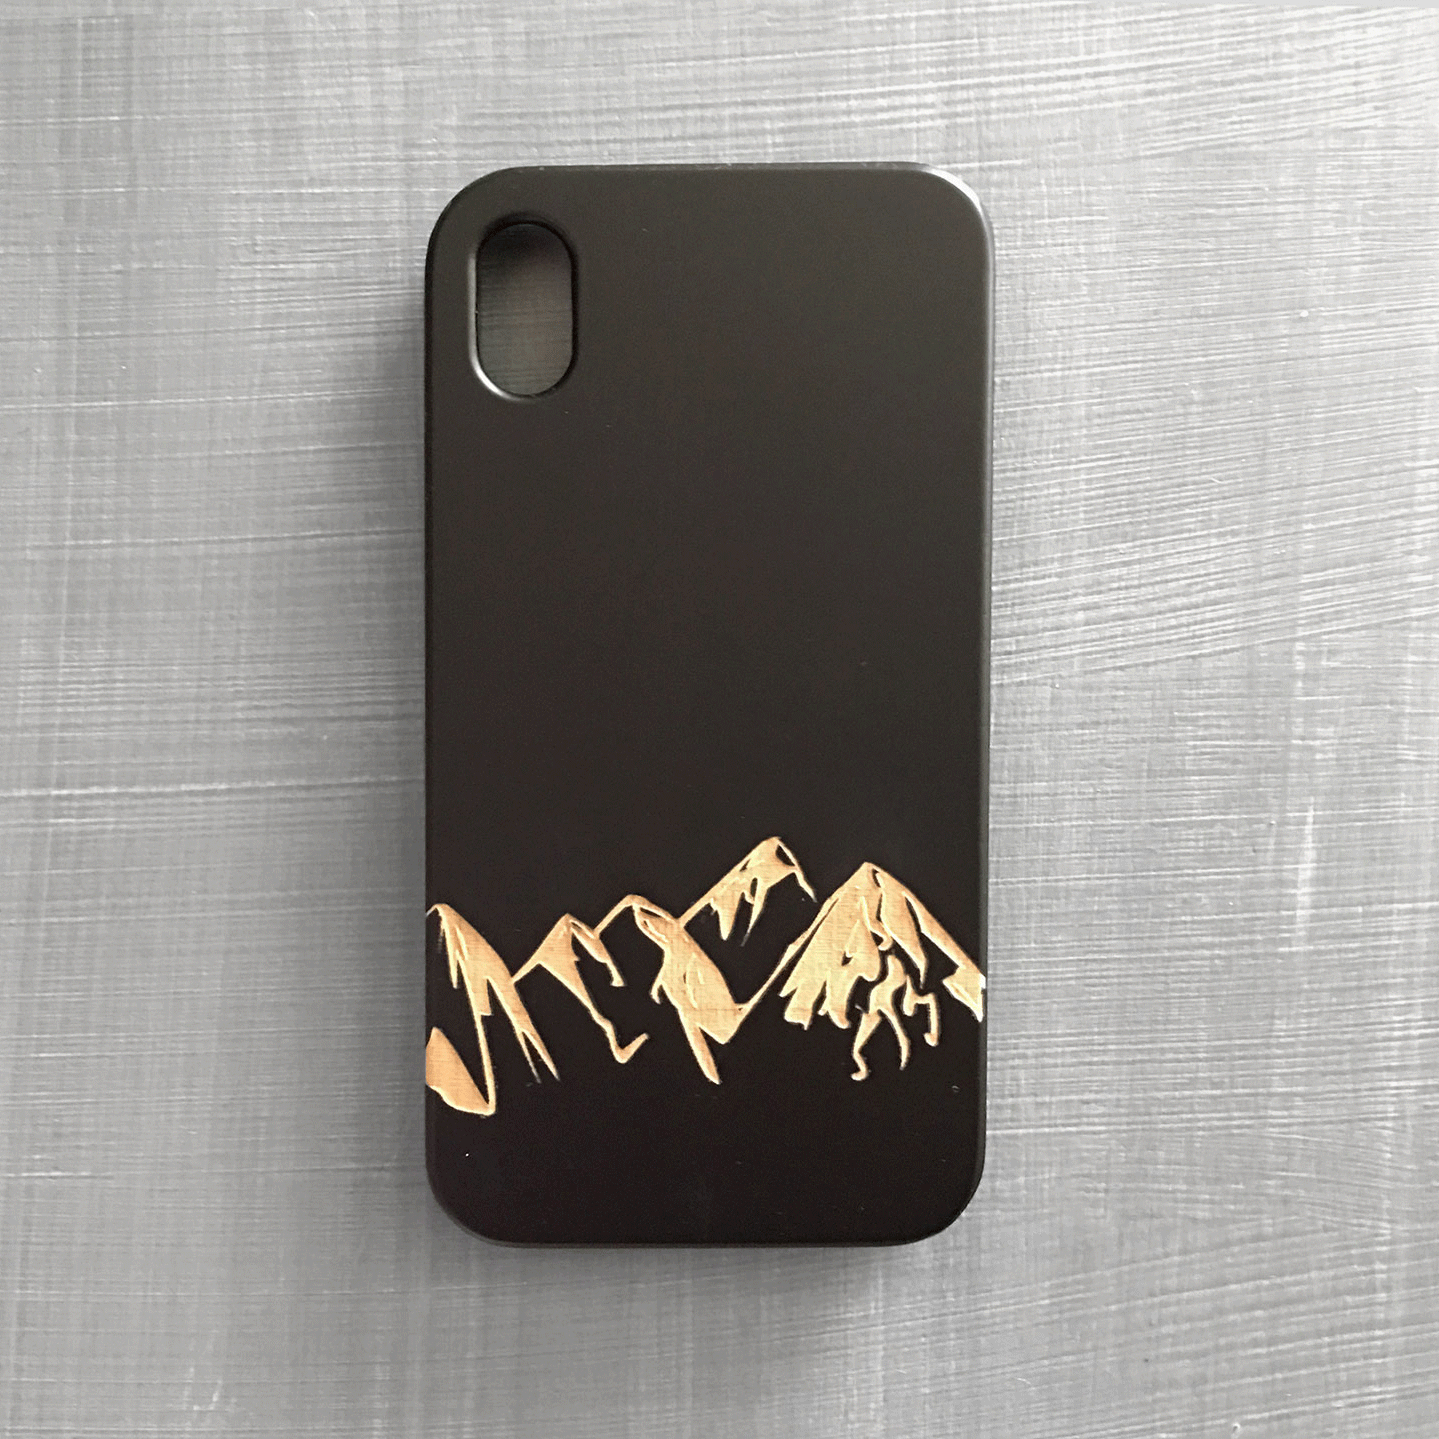 Mountain Range Phone Case Engraved onto Wooden Phone Case for iPhone and Samsung Galaxy